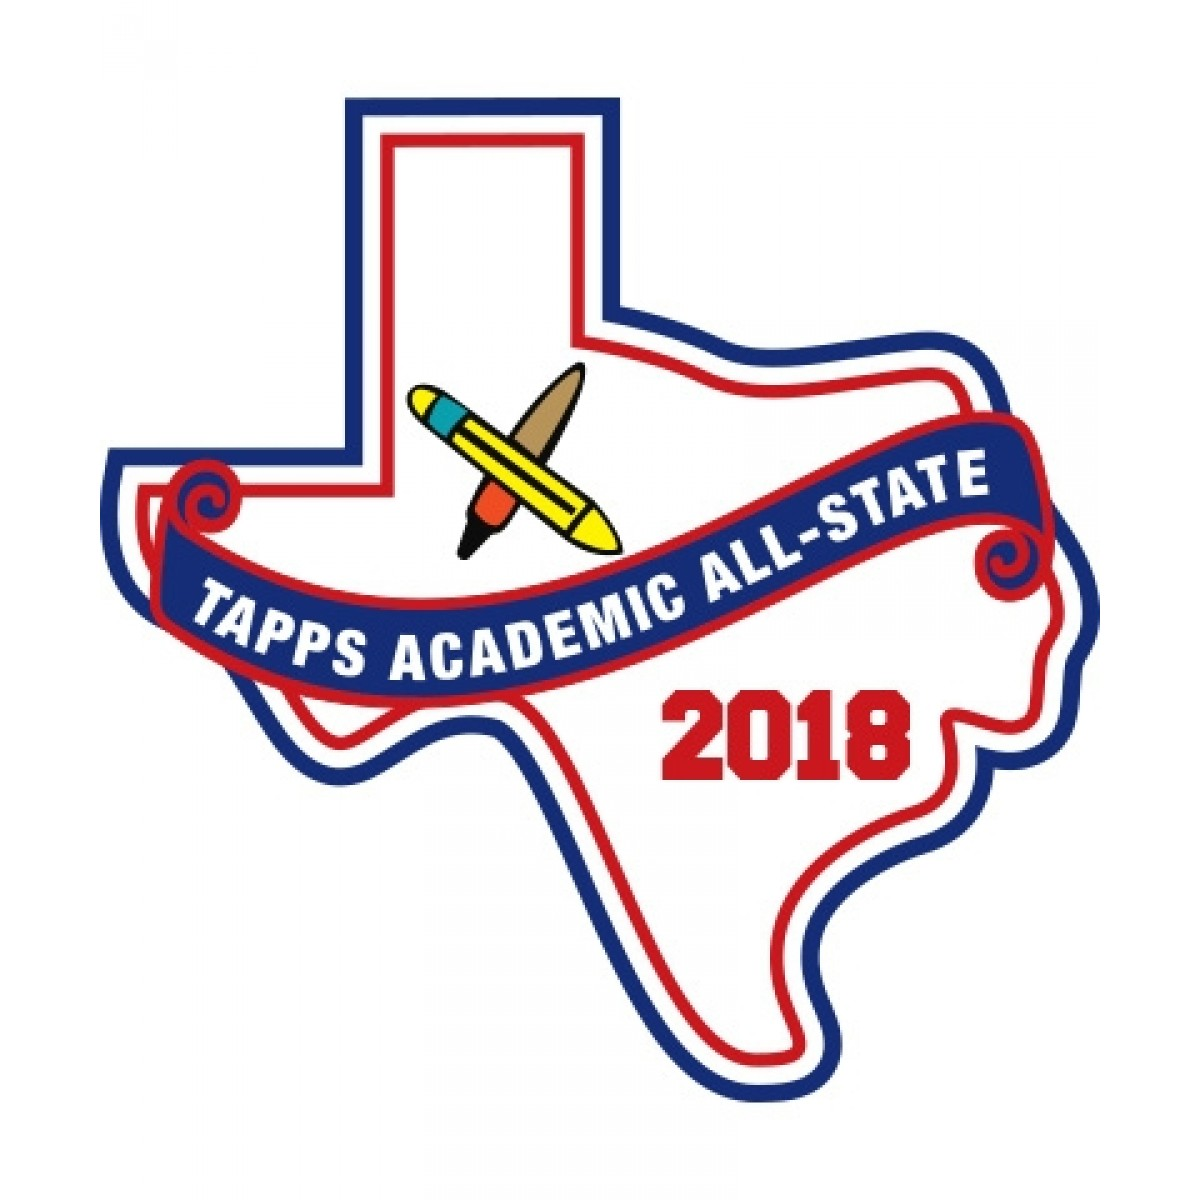 Felt 2018 TAPPS Academic All State Patch